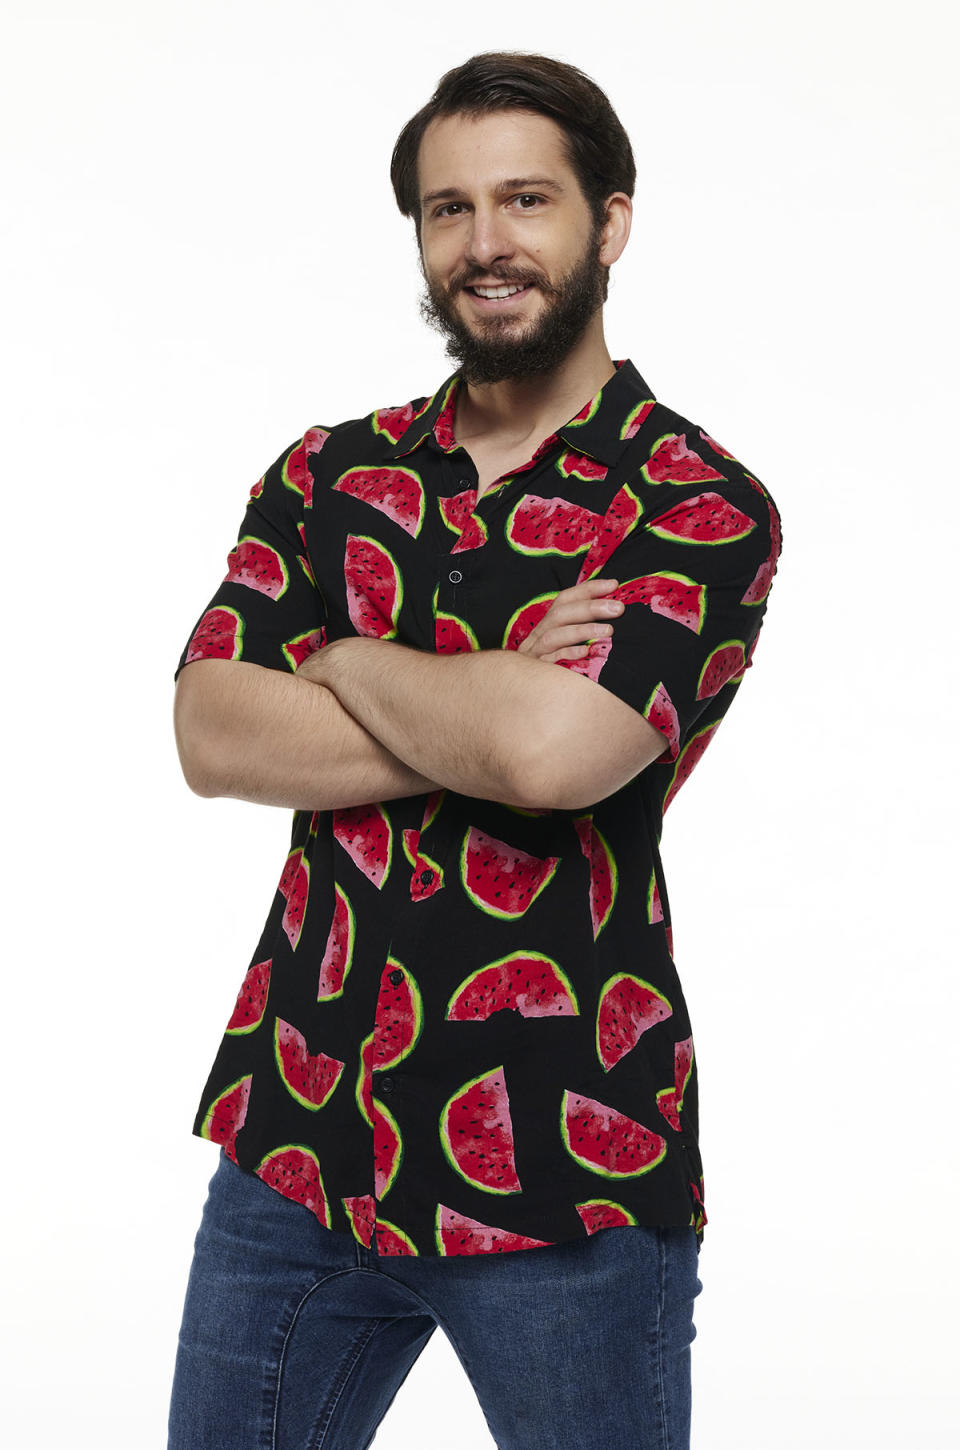 Beauty and the Geek contestant George Goldfeder wearing a shirt with a watermelon print